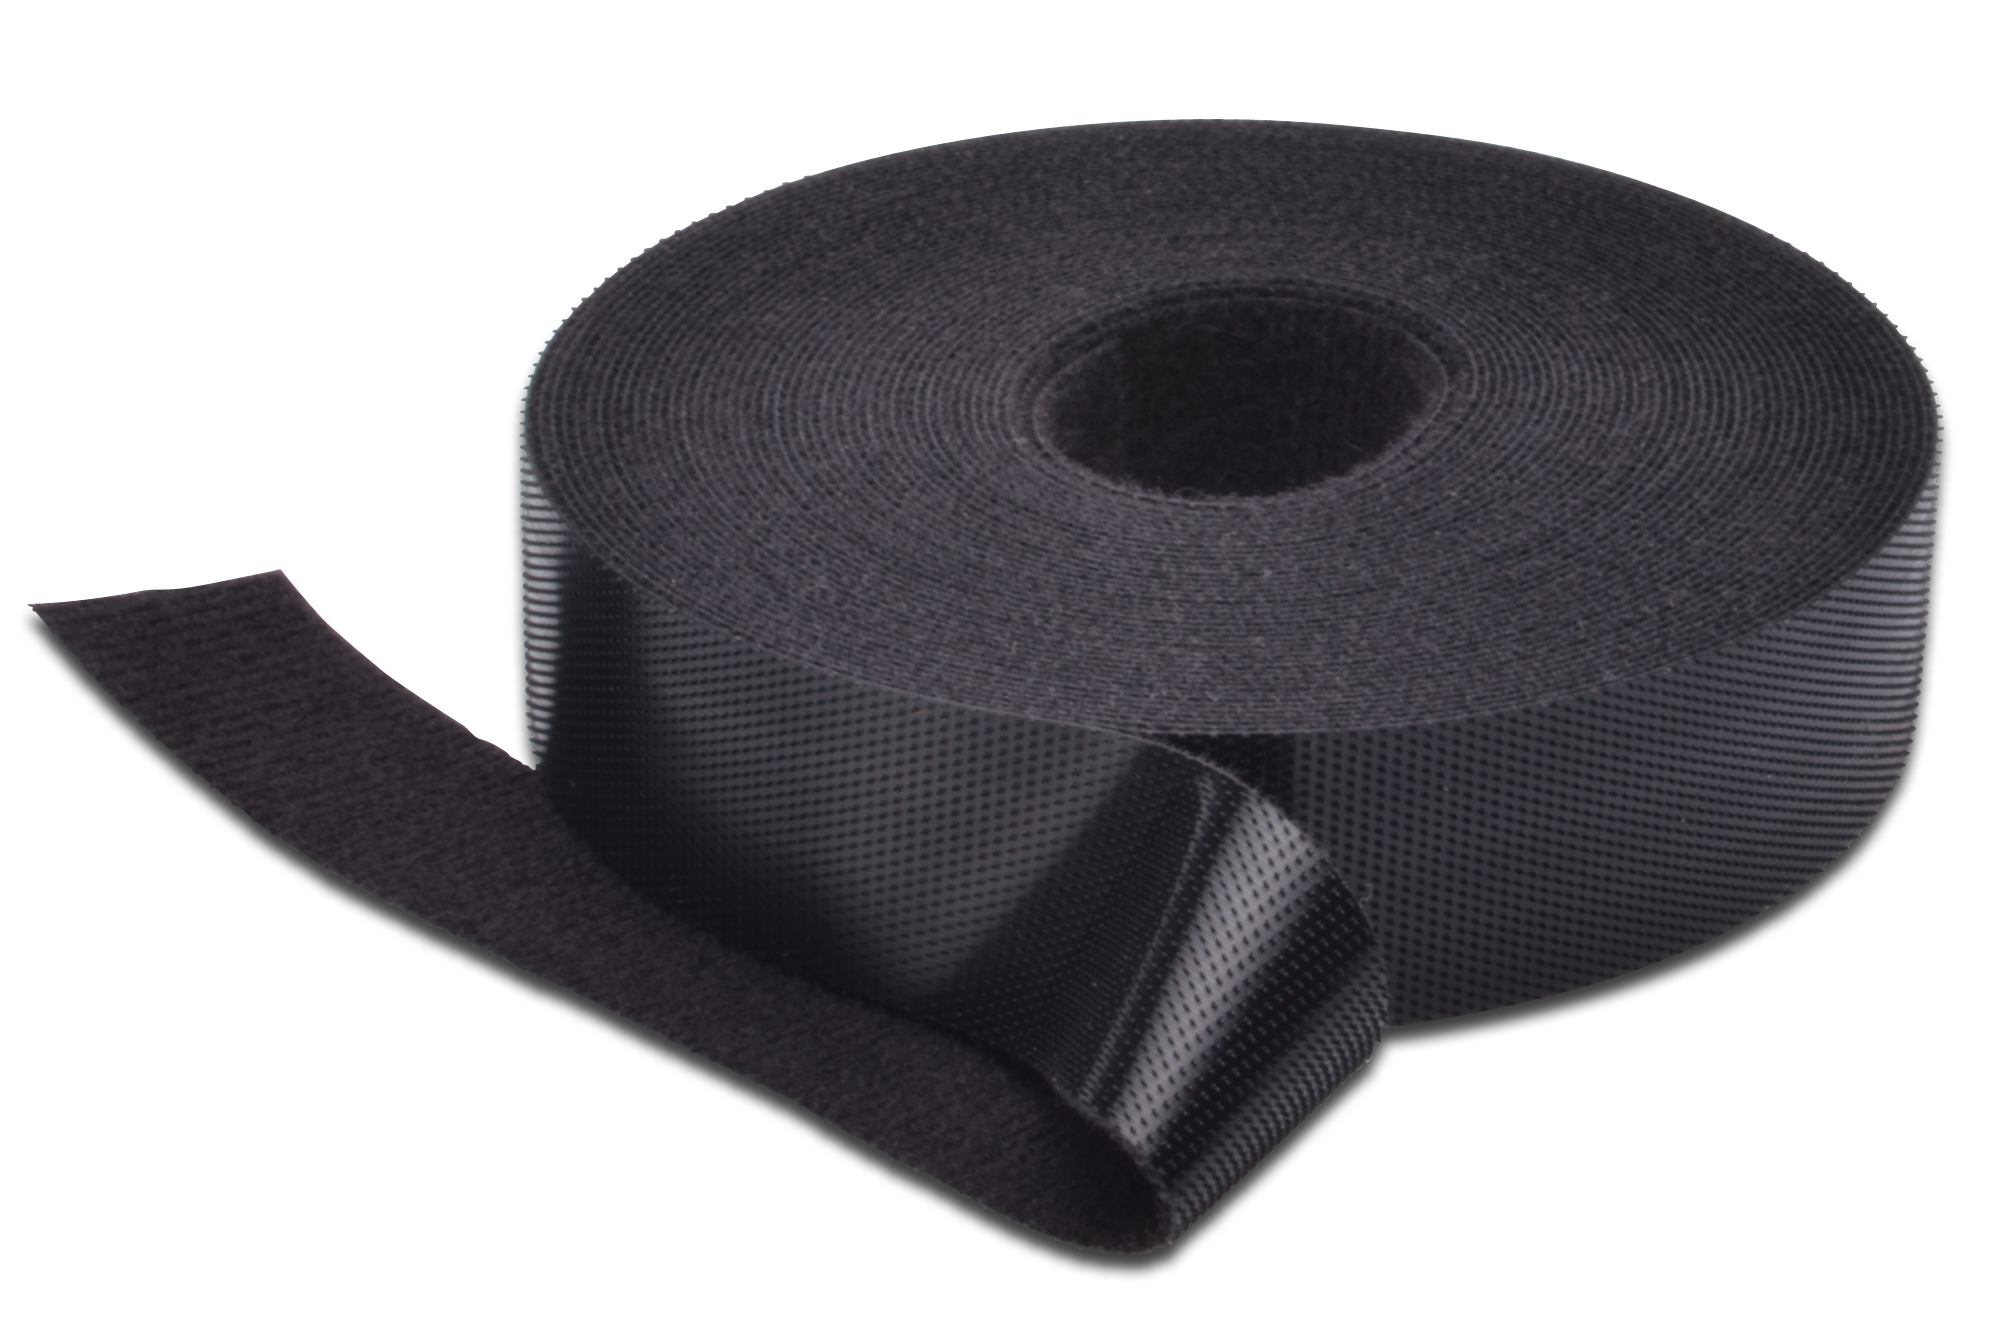 DN-CT-10M-20 Velcro Tape. 20 Mm Wide For StructuRed Cabling 10  Factory Sealed